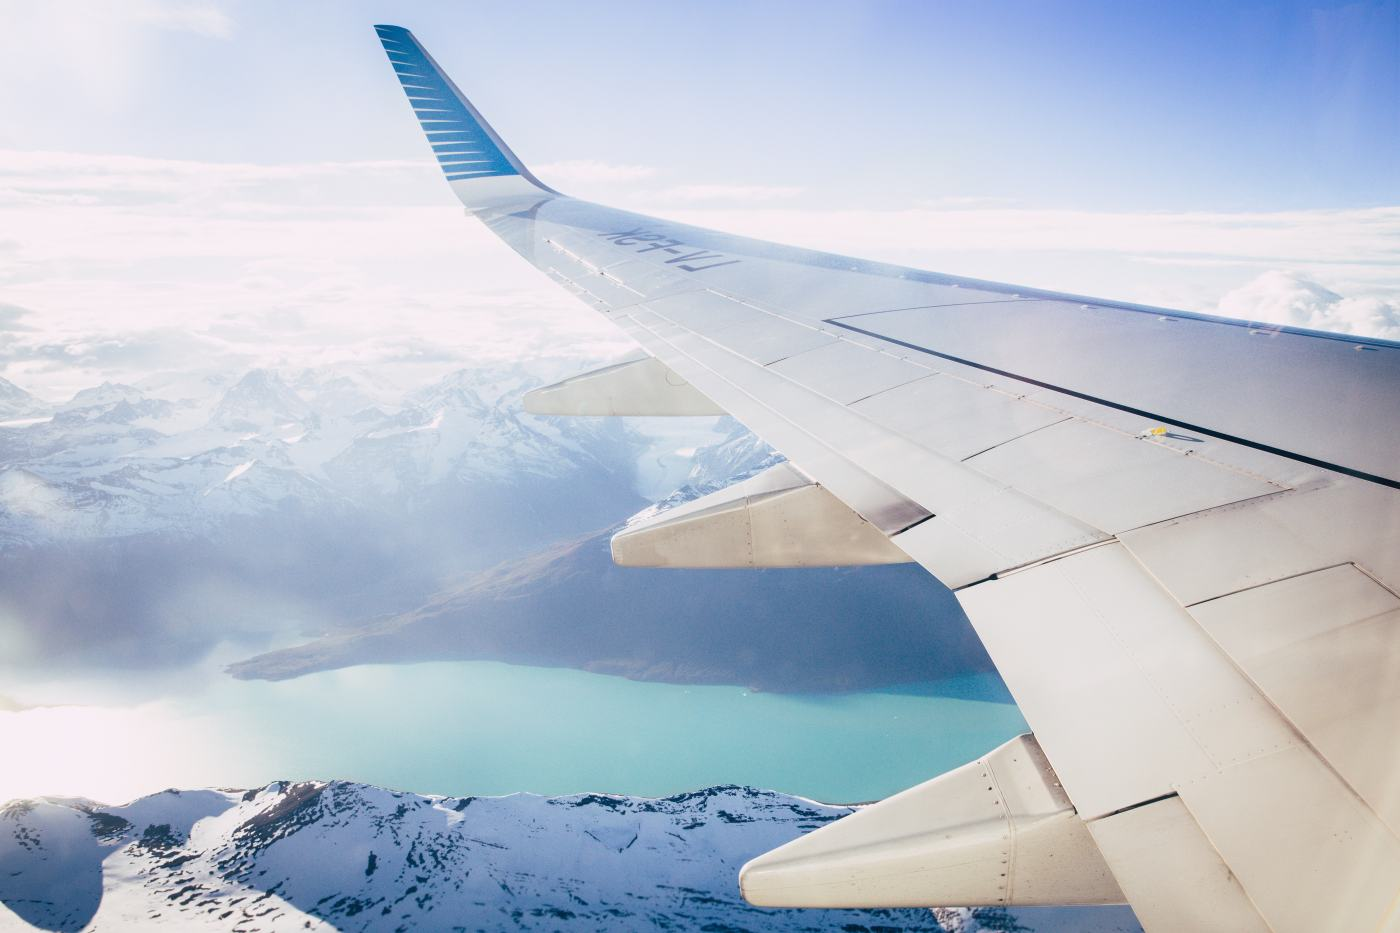 Best Travel Sites for Flights